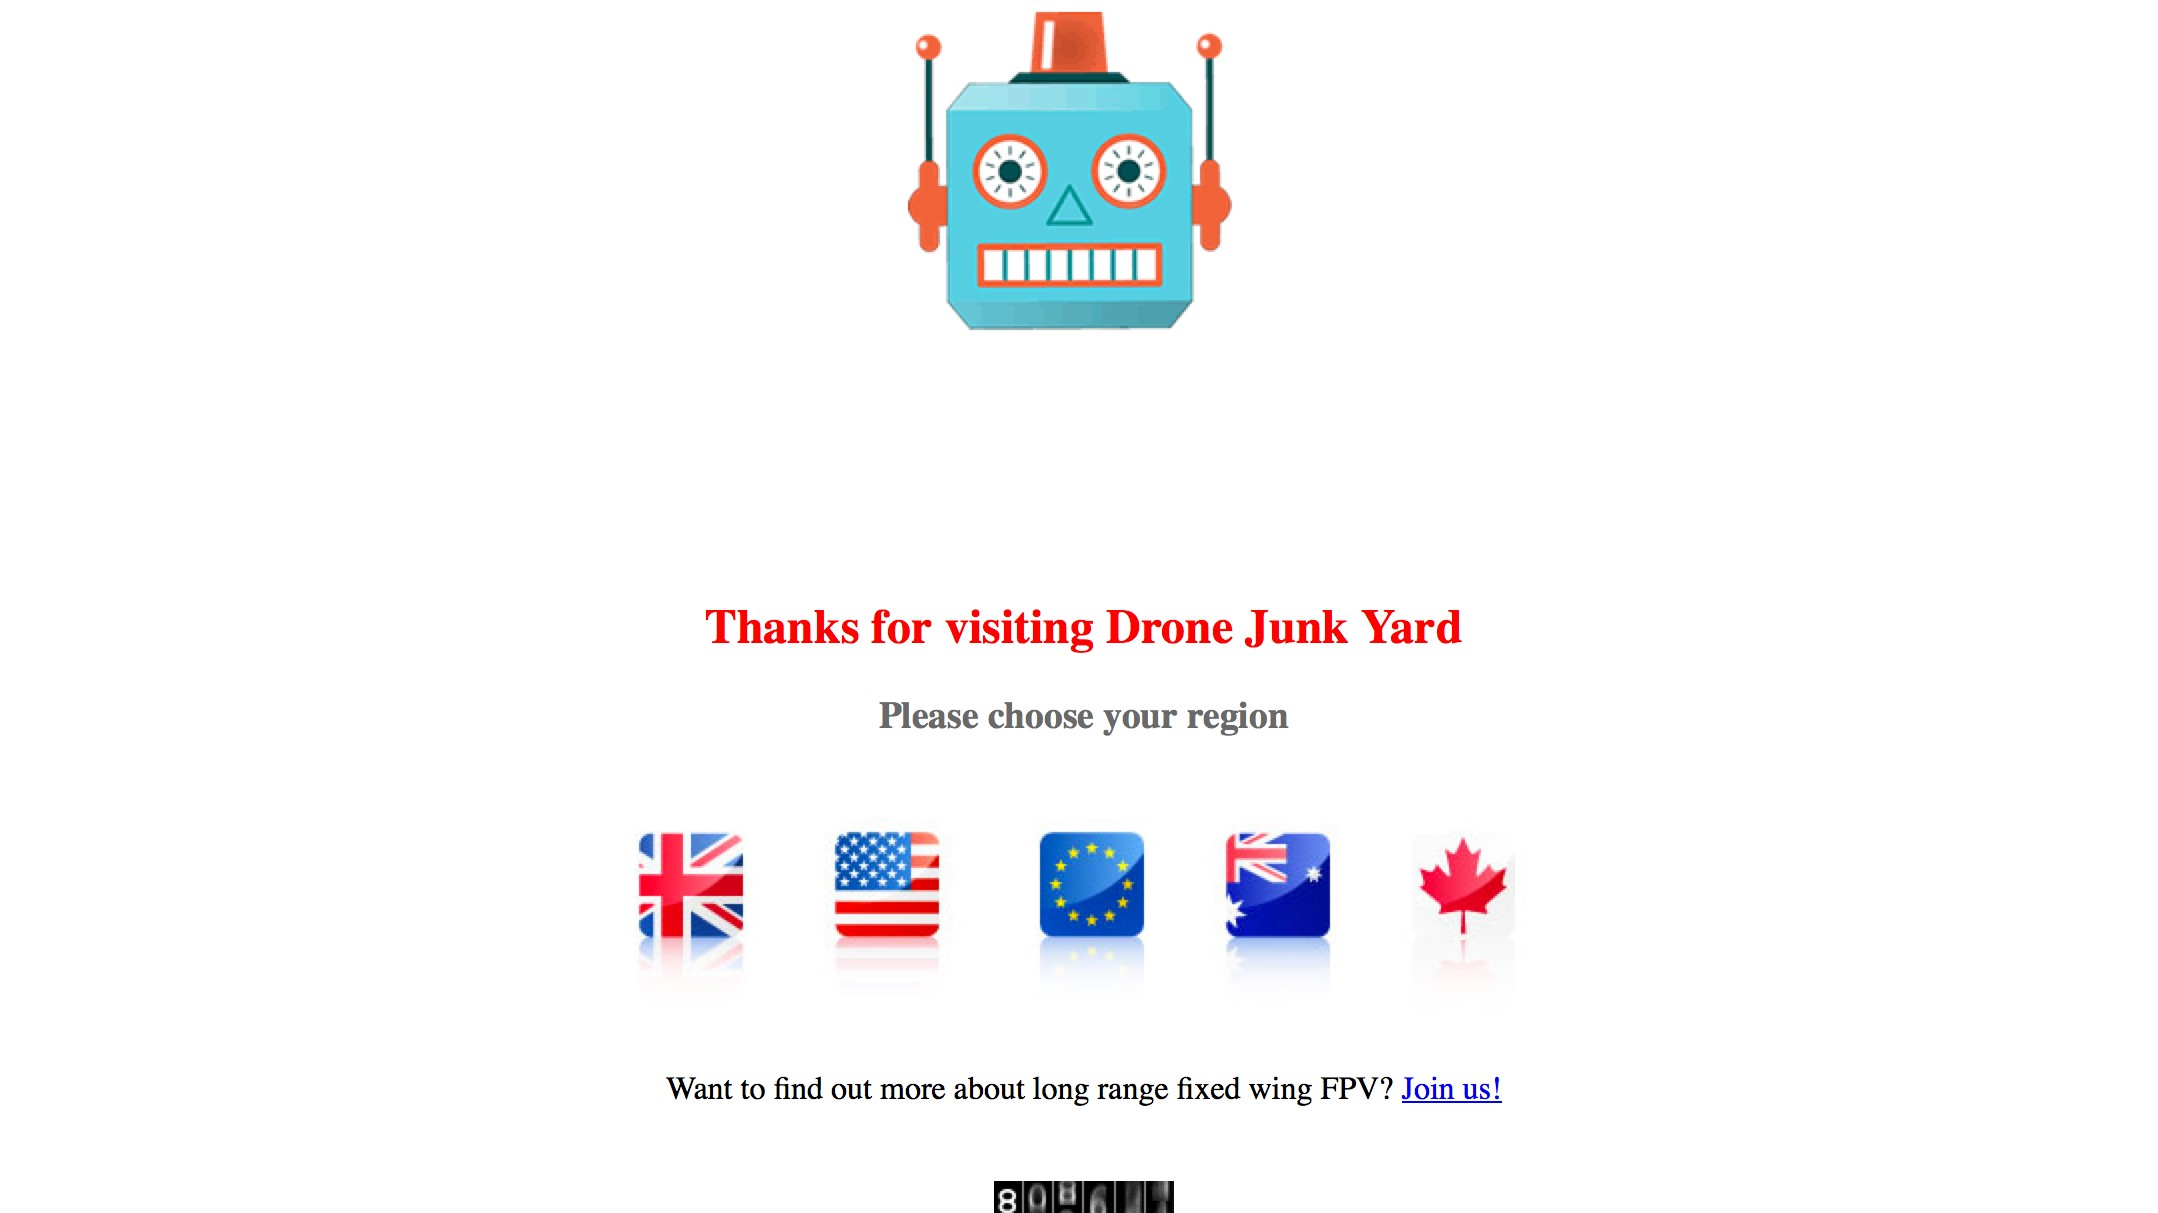 This Online 'Drone Junk Yard' Lets UAV Owners Swap and Exchange Parts